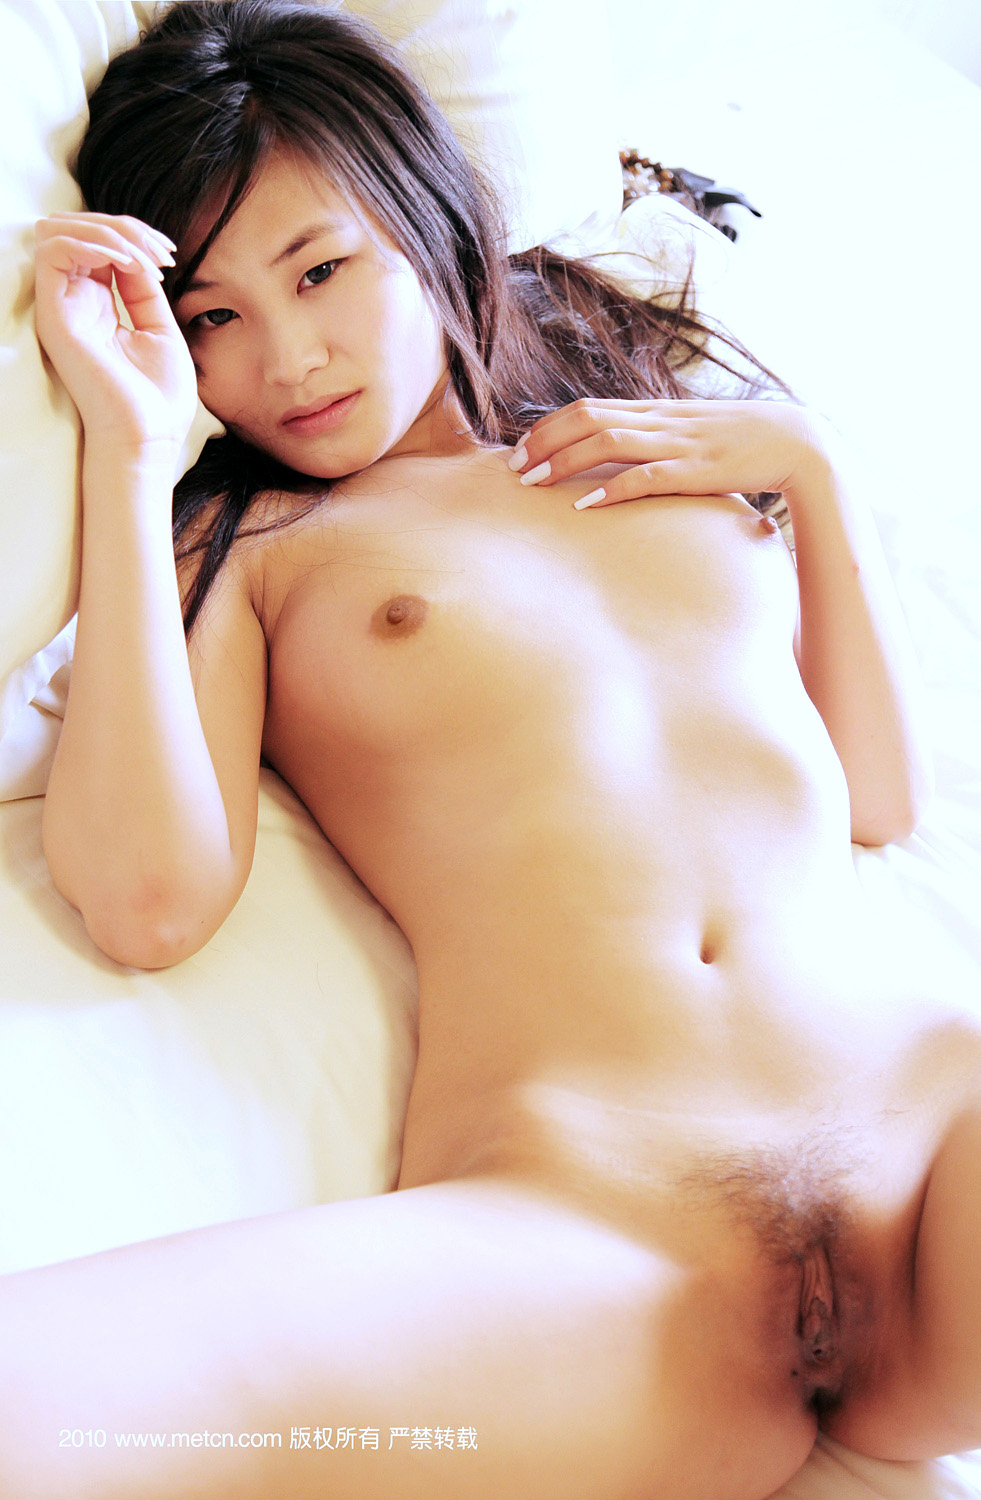 Was and Asian blog adult for